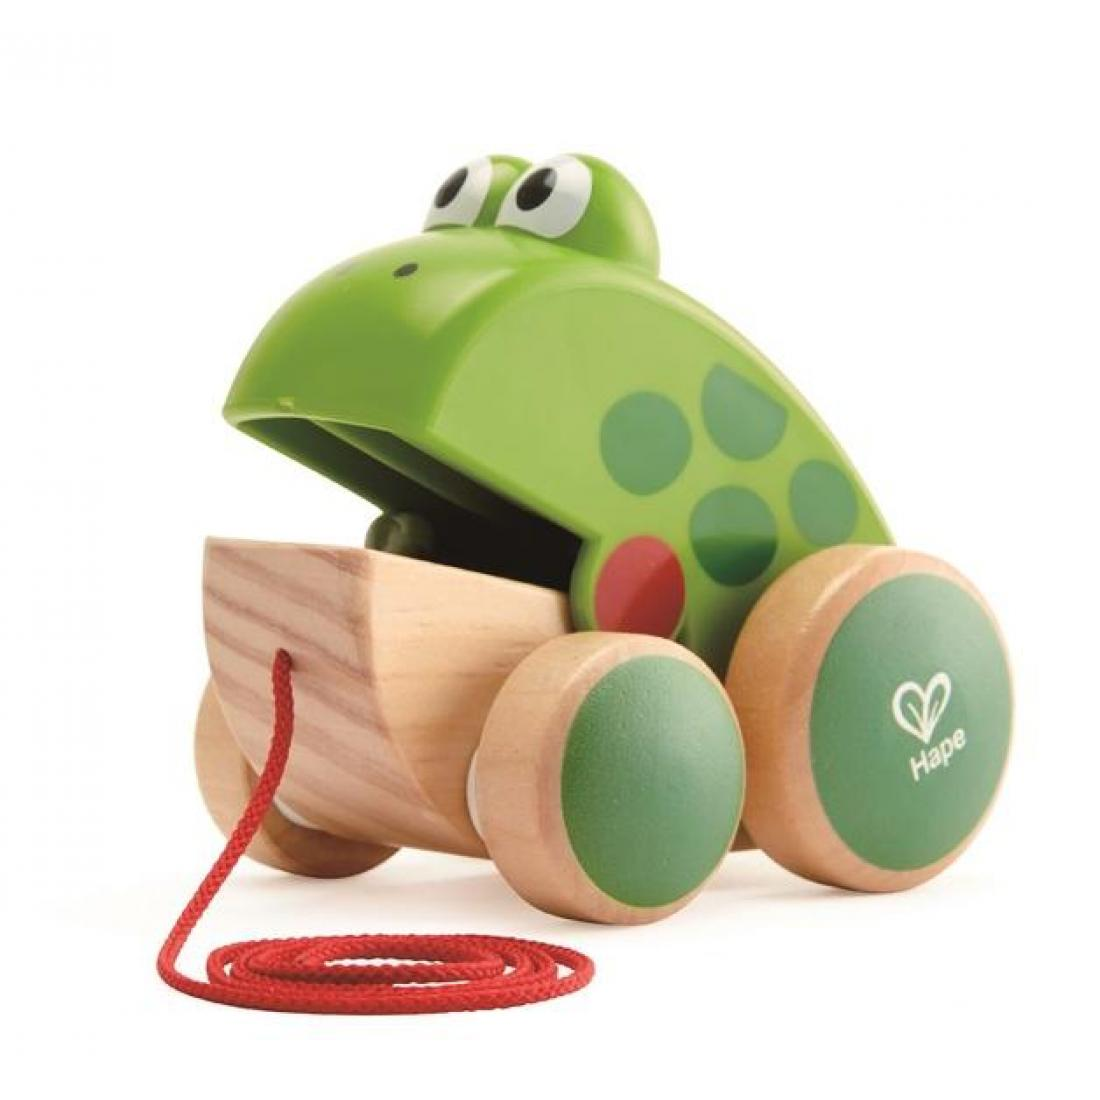 Hape: Frog – Pull Along Toy. It clicks as you pull it along. New Zealand's number 1 kiwi icon and a toy that children have enjoyed for more than 50 years.